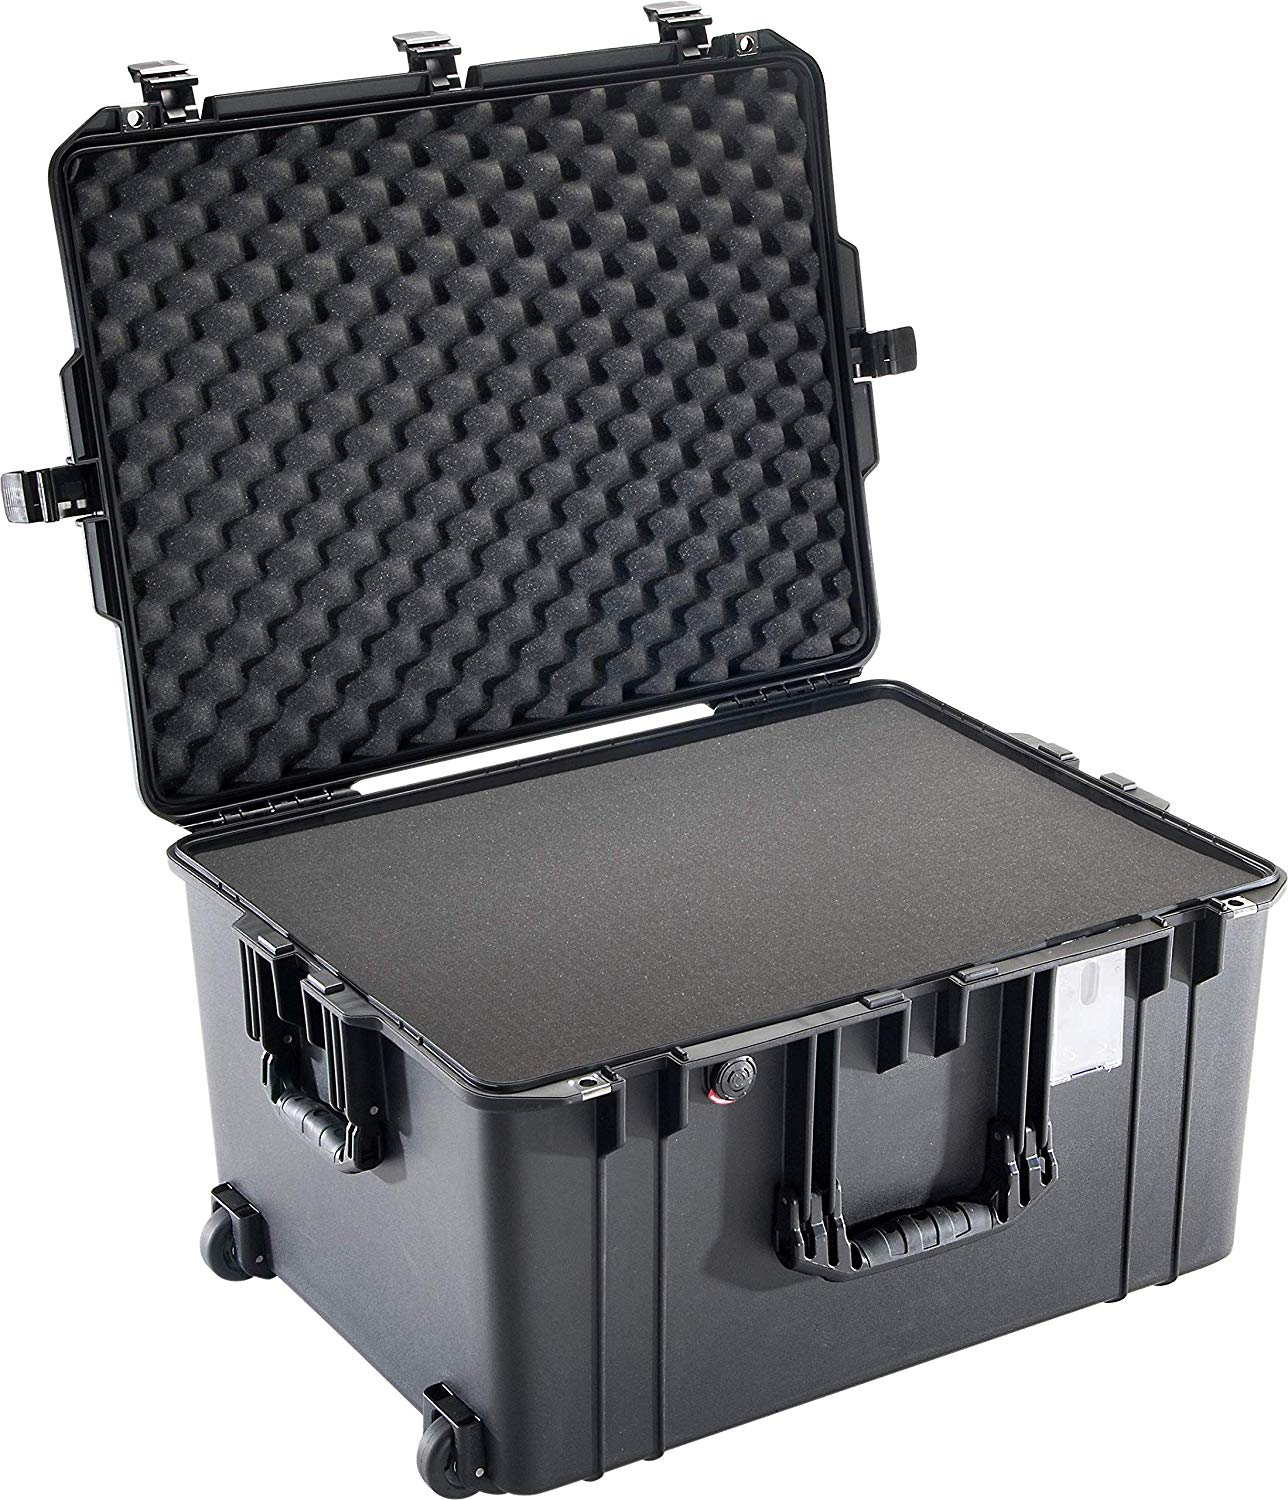 Pelican Air 1637 Case with Foam